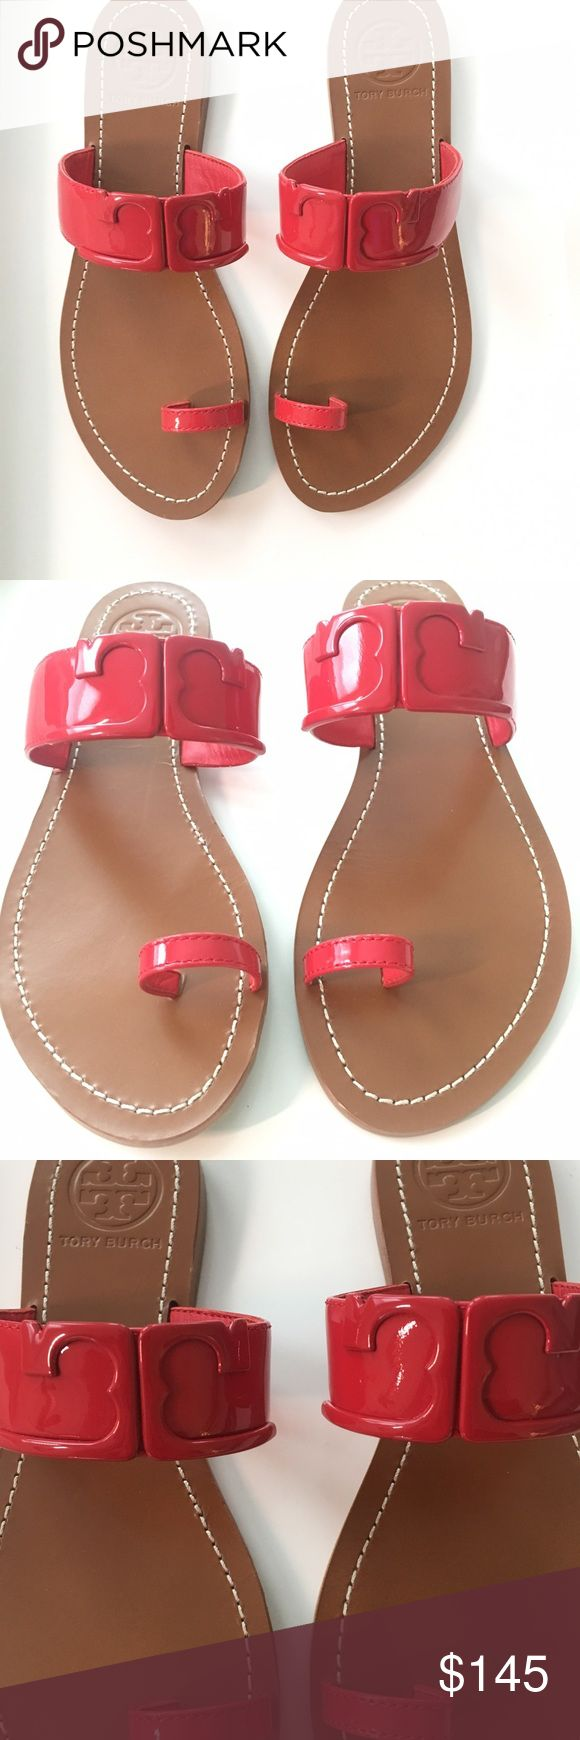 """Tory Burch Marcia Brilliant Red Slide Sandal NWOT, Tory Burch Marcia Brilliant Red Patent Leather Toe Ring Slide Sandal in a size 7.5, never been worn!! Sole measures 0.3"""", rubber outsole, leather lining. Strap bands instep with tonal logo. Tory Burch Shoes Sandals"""